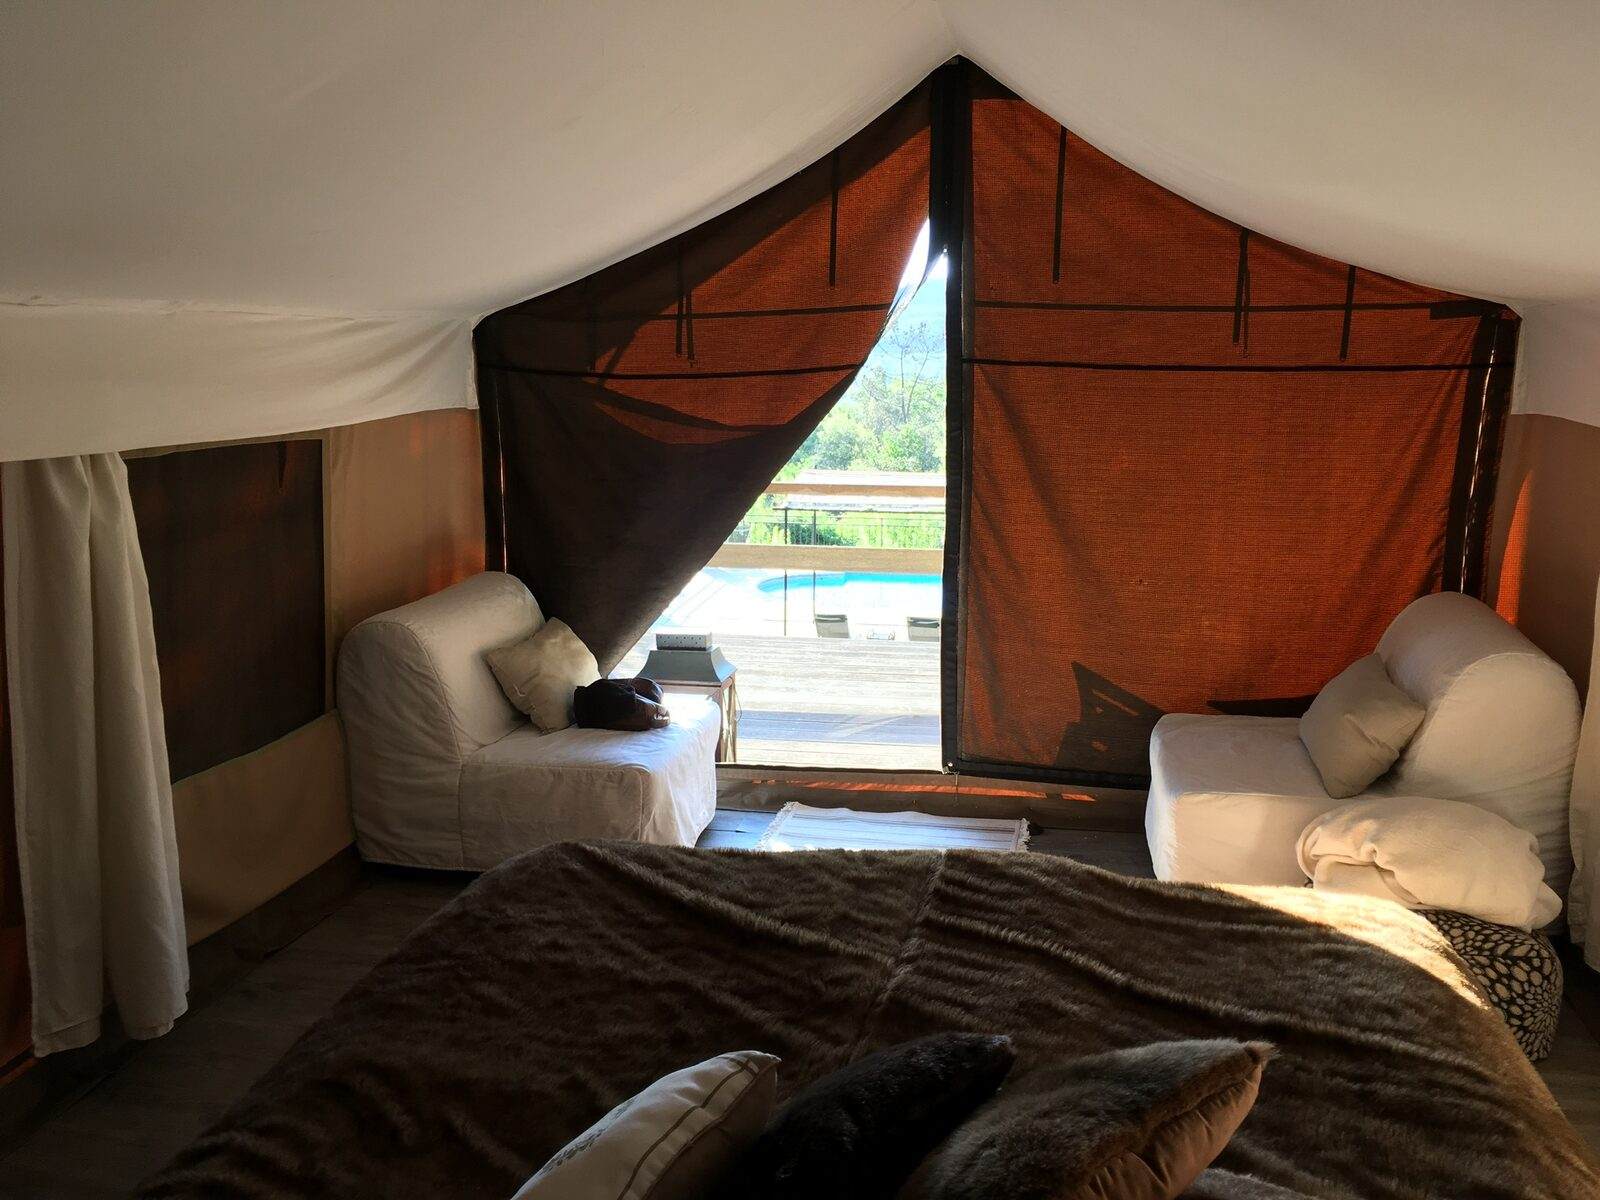 Glamping in een safaritent bij le Paradis in Goudargues